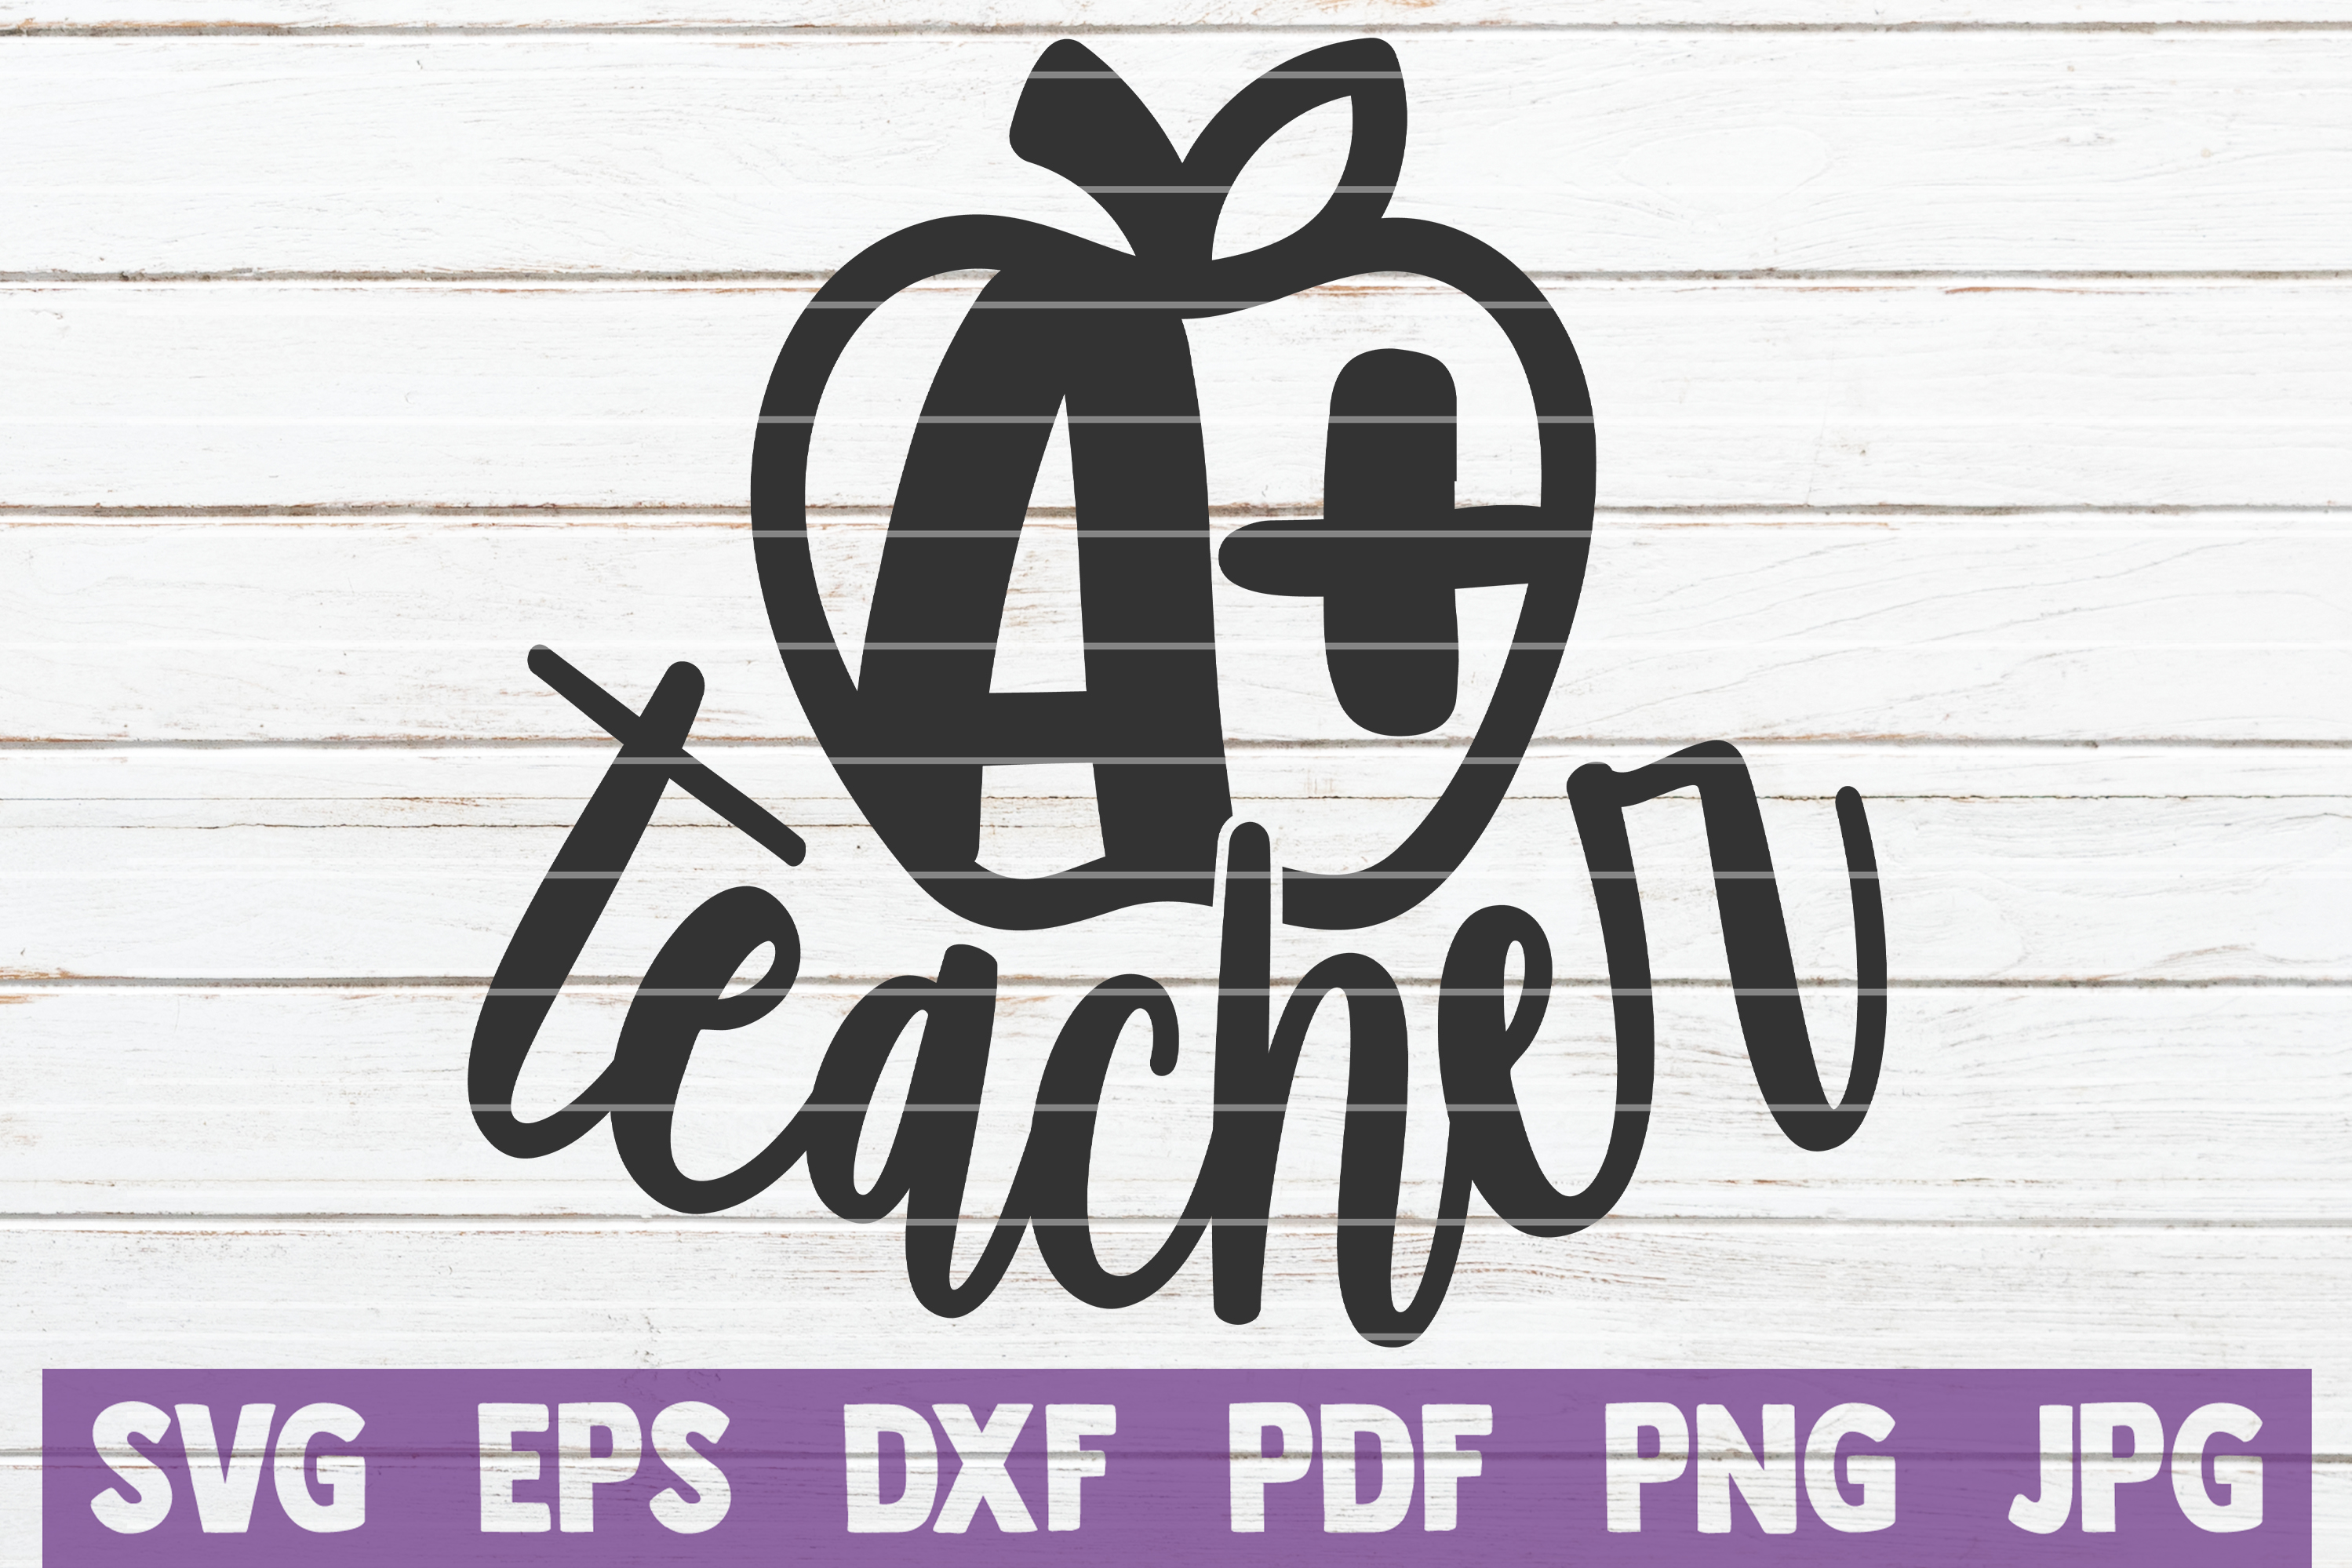 Download Free A Plus Teacher Graphic By Mintymarshmallows Creative Fabrica for Cricut Explore, Silhouette and other cutting machines.